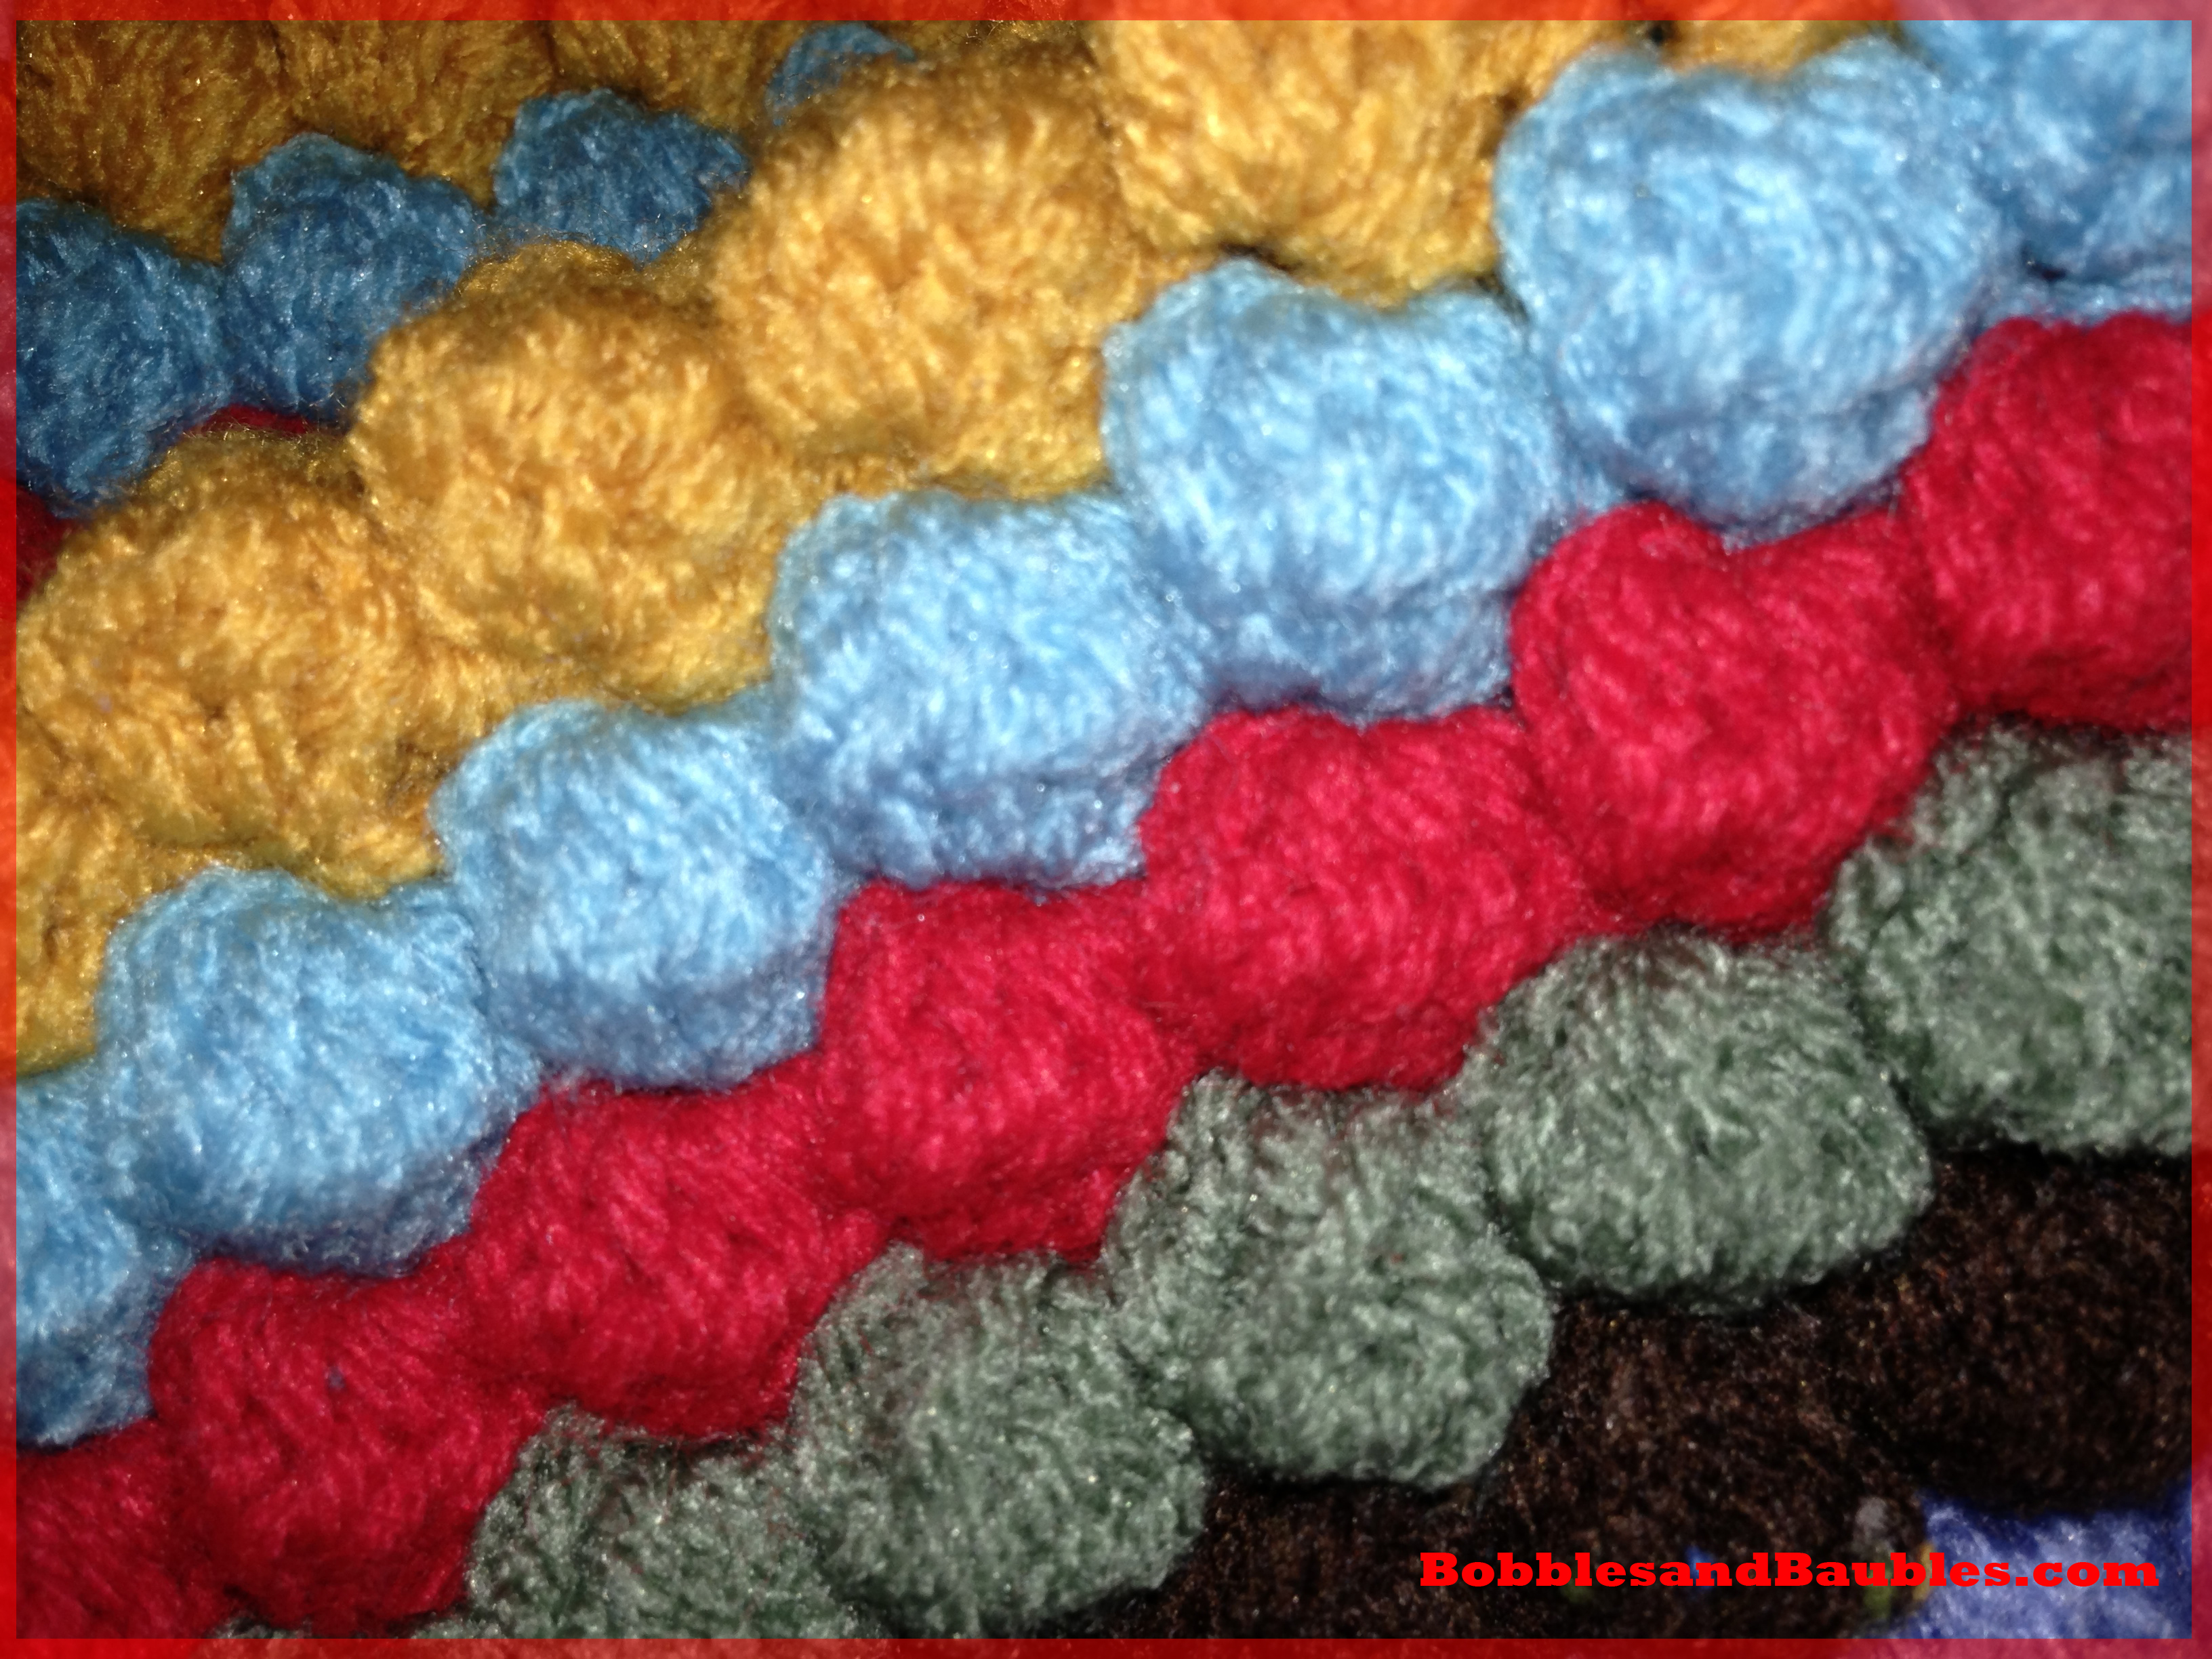 Knitting Pattern For Bobble Blanket : My Never-Ending Scrap Yarn Bobble Blanket   Bobbles & Baubles